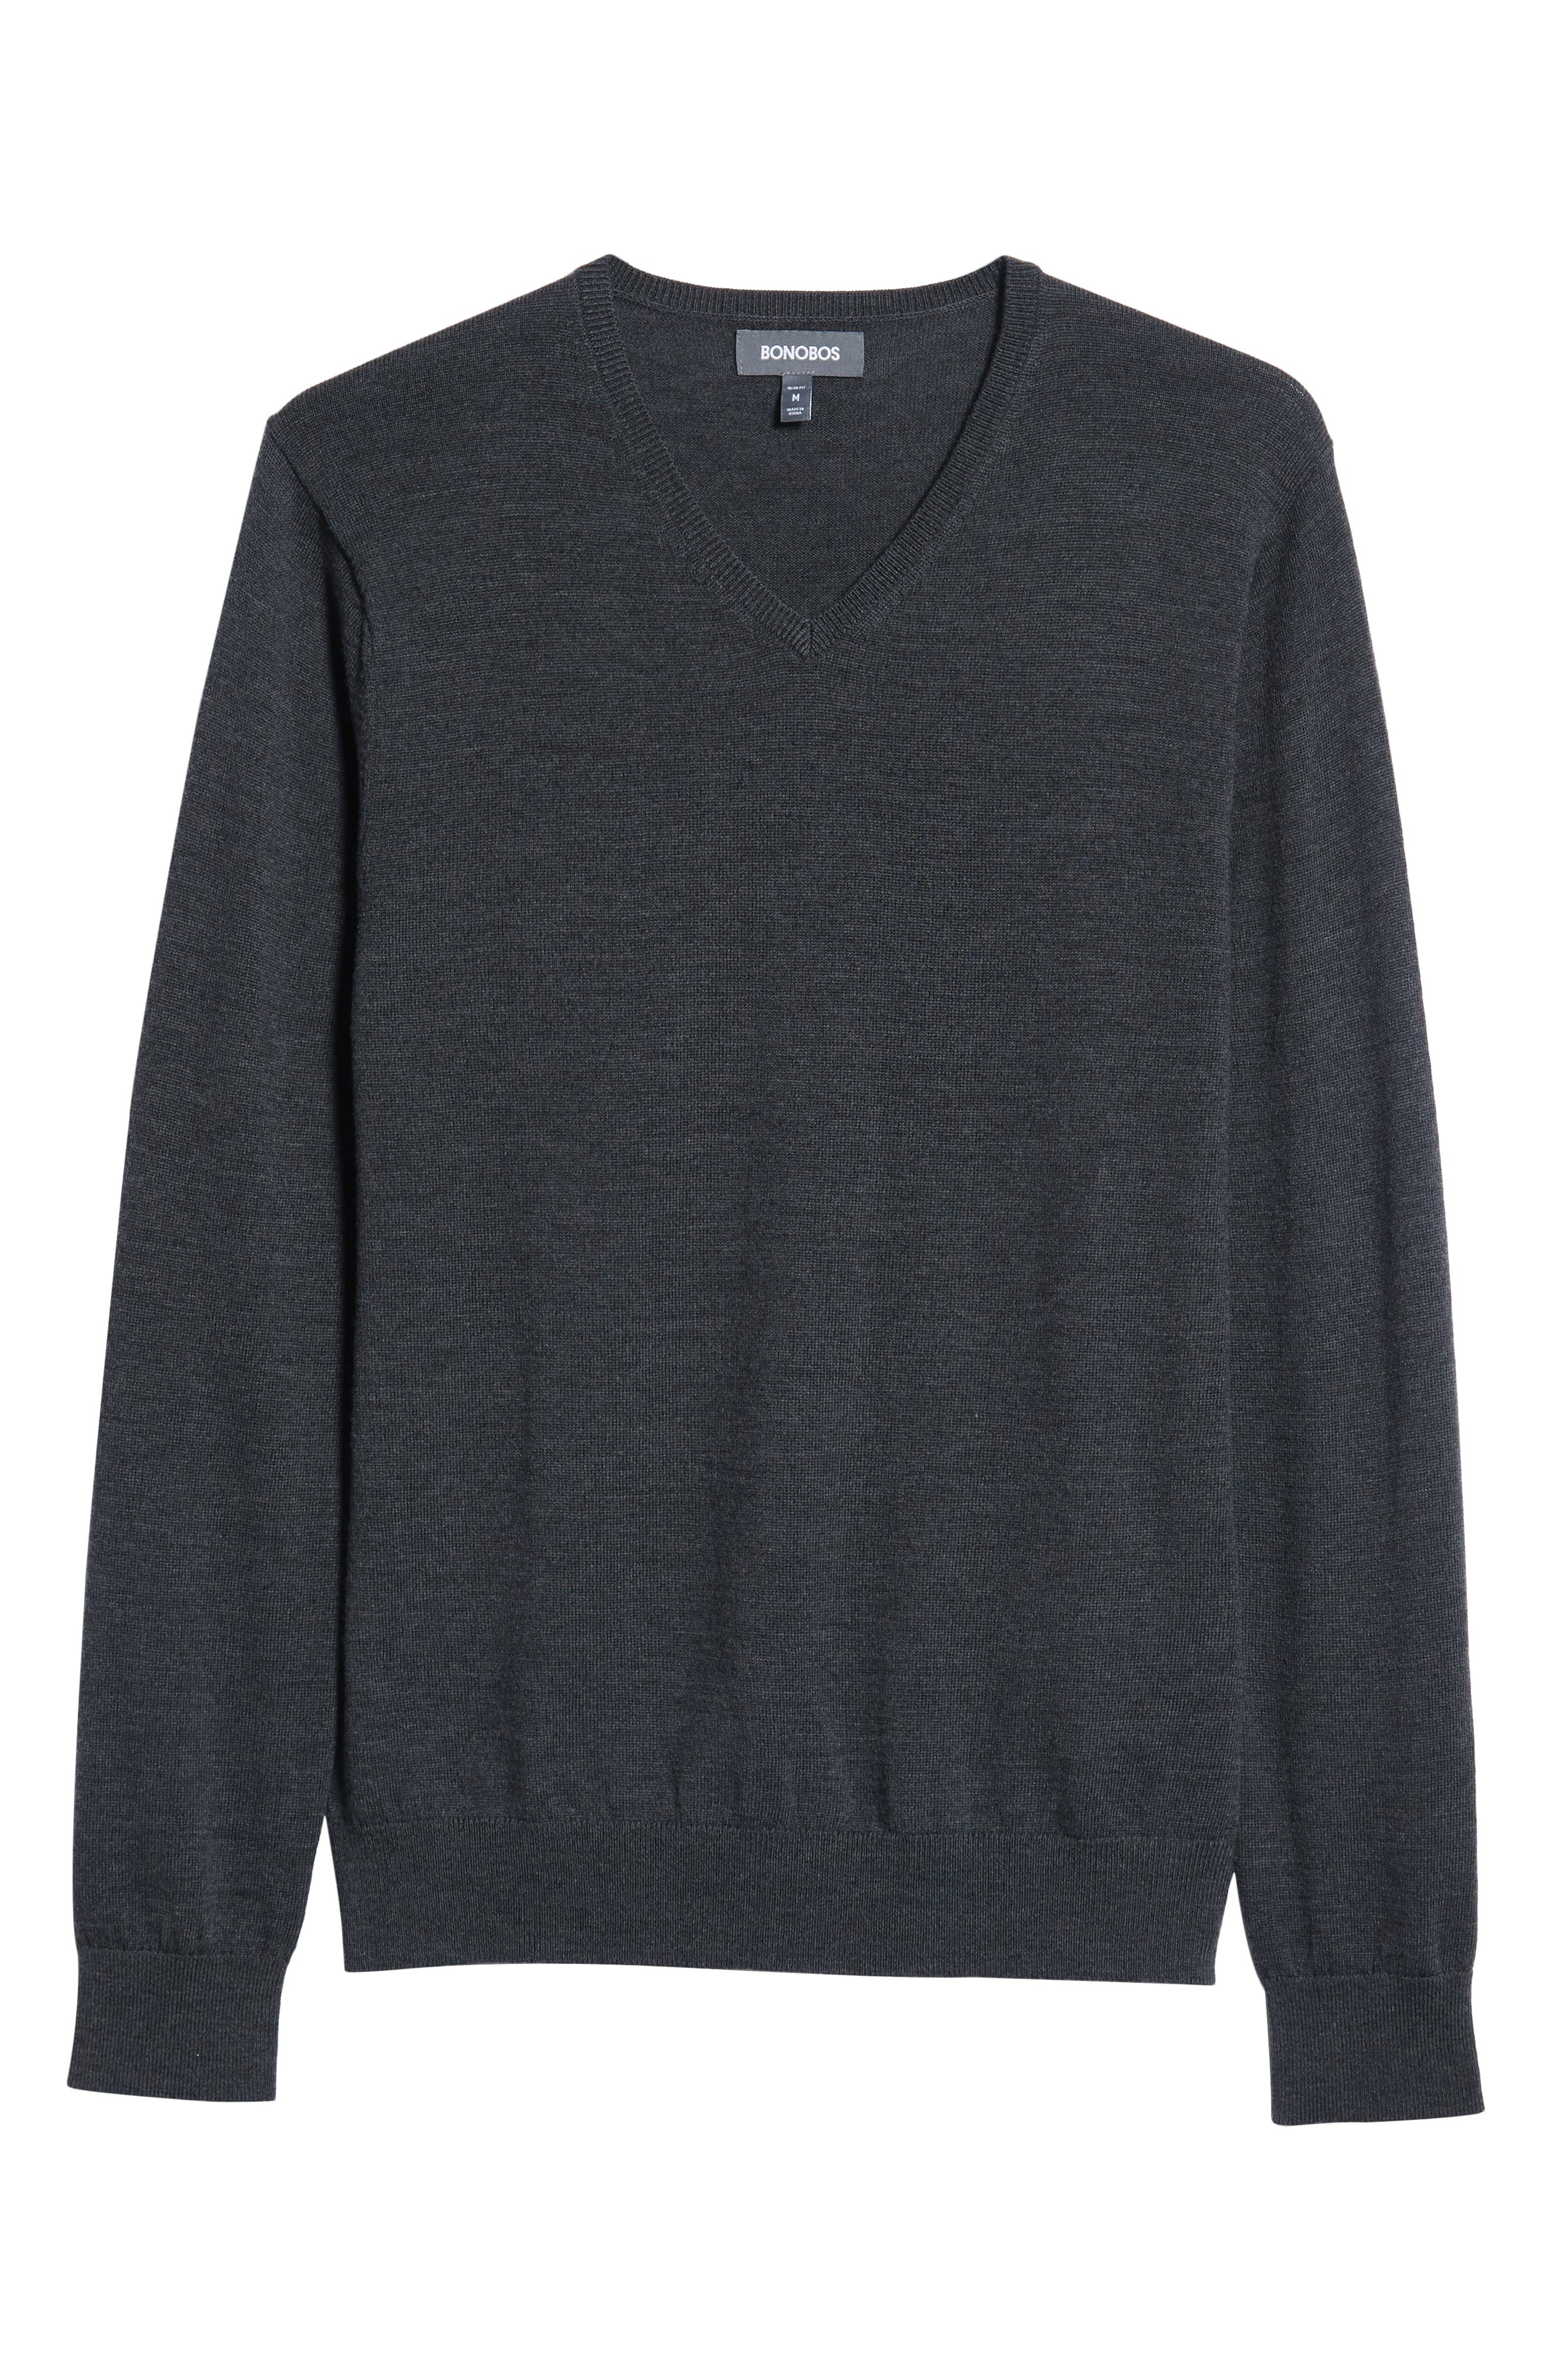 Slim Fit V-Neck Merino Wool Sweater,                             Alternate thumbnail 6, color,                             HEATHER CHARCOAL